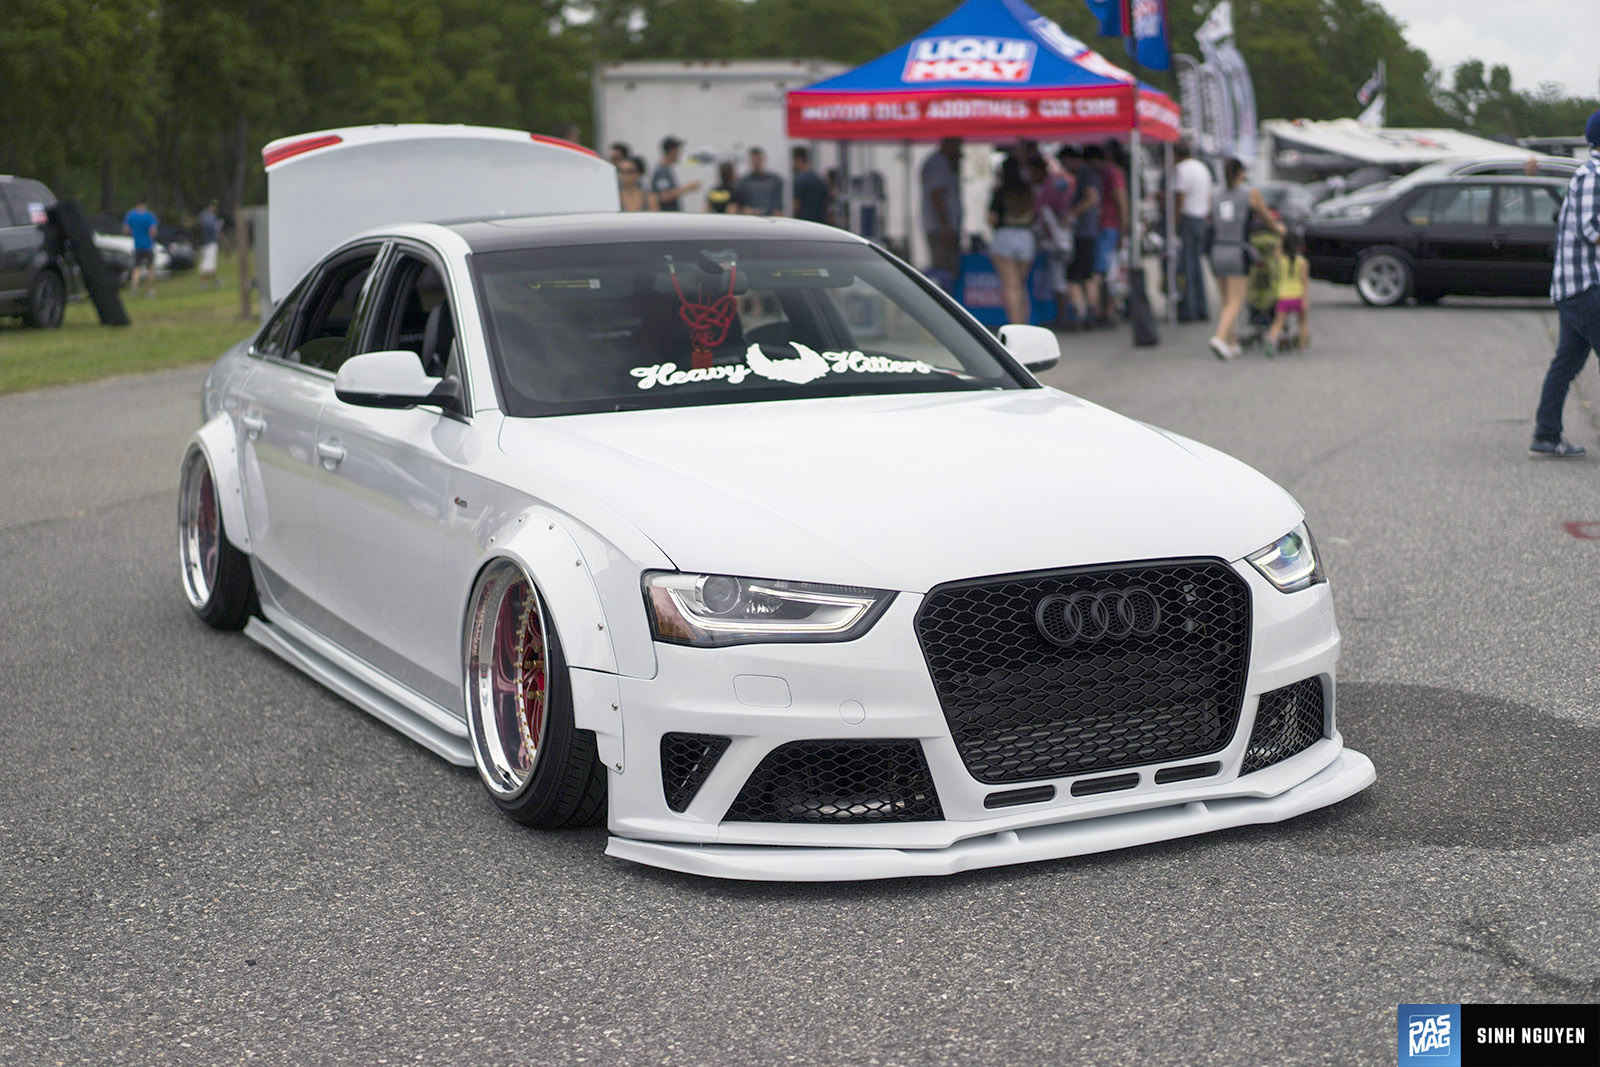 european experience Sowo partners' european experience, hosted in savannah, ga, was home to the debut of the volkswagen 2018 enthusiast fleet embracing the enthusiast lifestyle,.